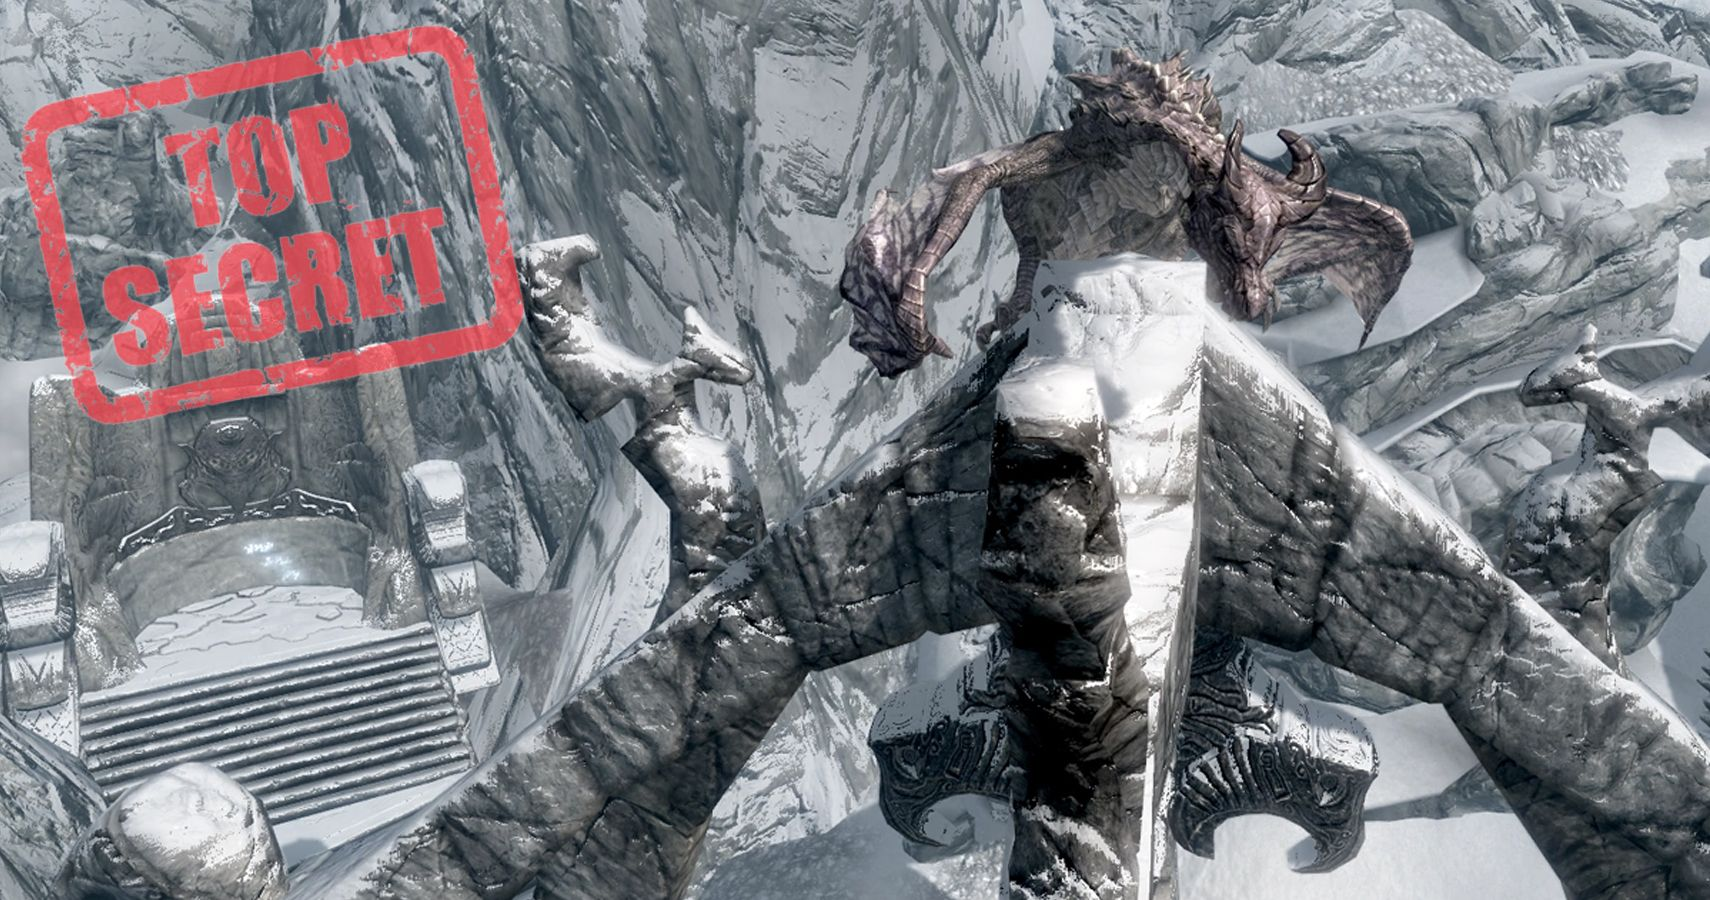 15 Awesome Quests In Skyrim You Didn't Know About | TheGamer